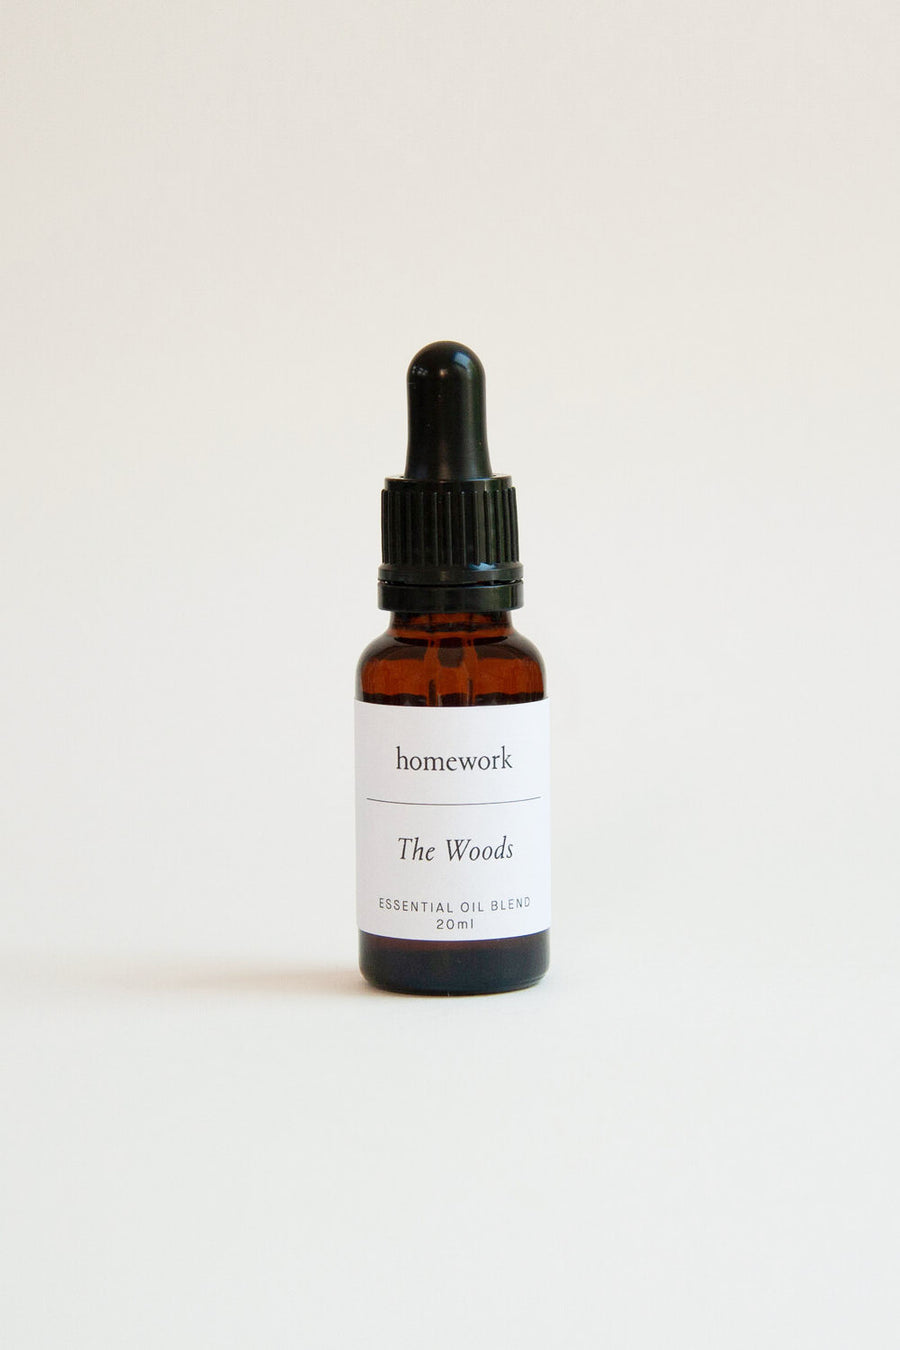 The Woods Essential Oil Blend